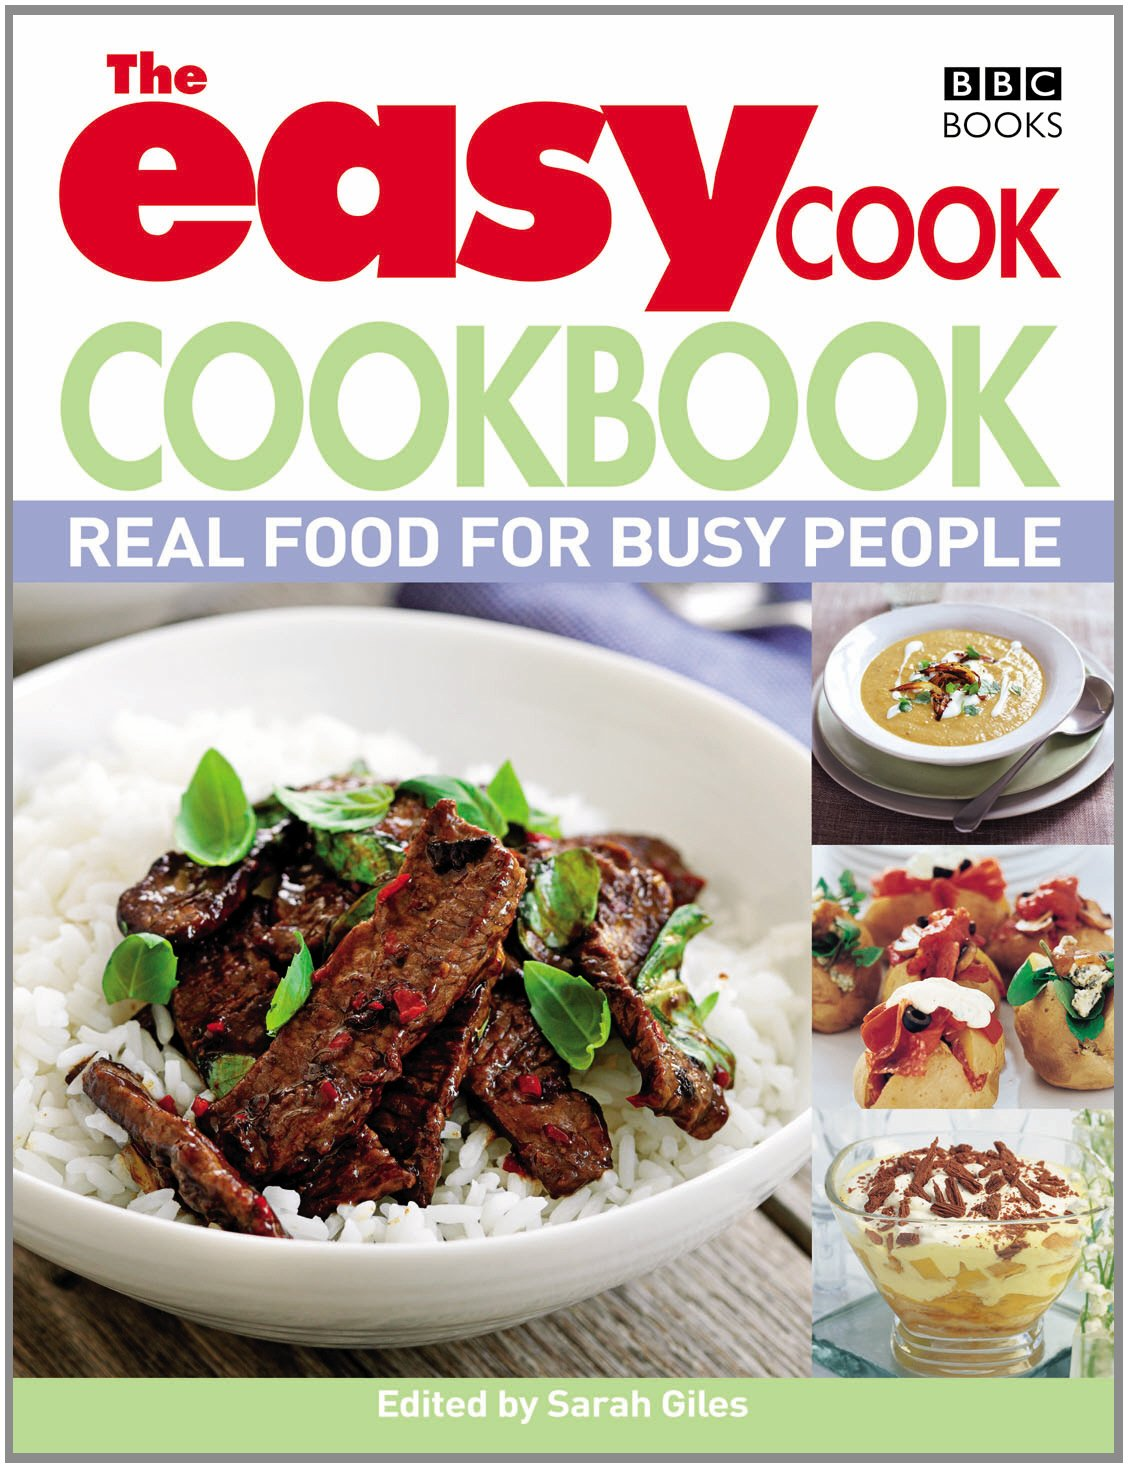 The easy cook cookbook real food for busy people amazon the easy cook cookbook real food for busy people amazon sarah giles 8601200766073 books forumfinder Gallery